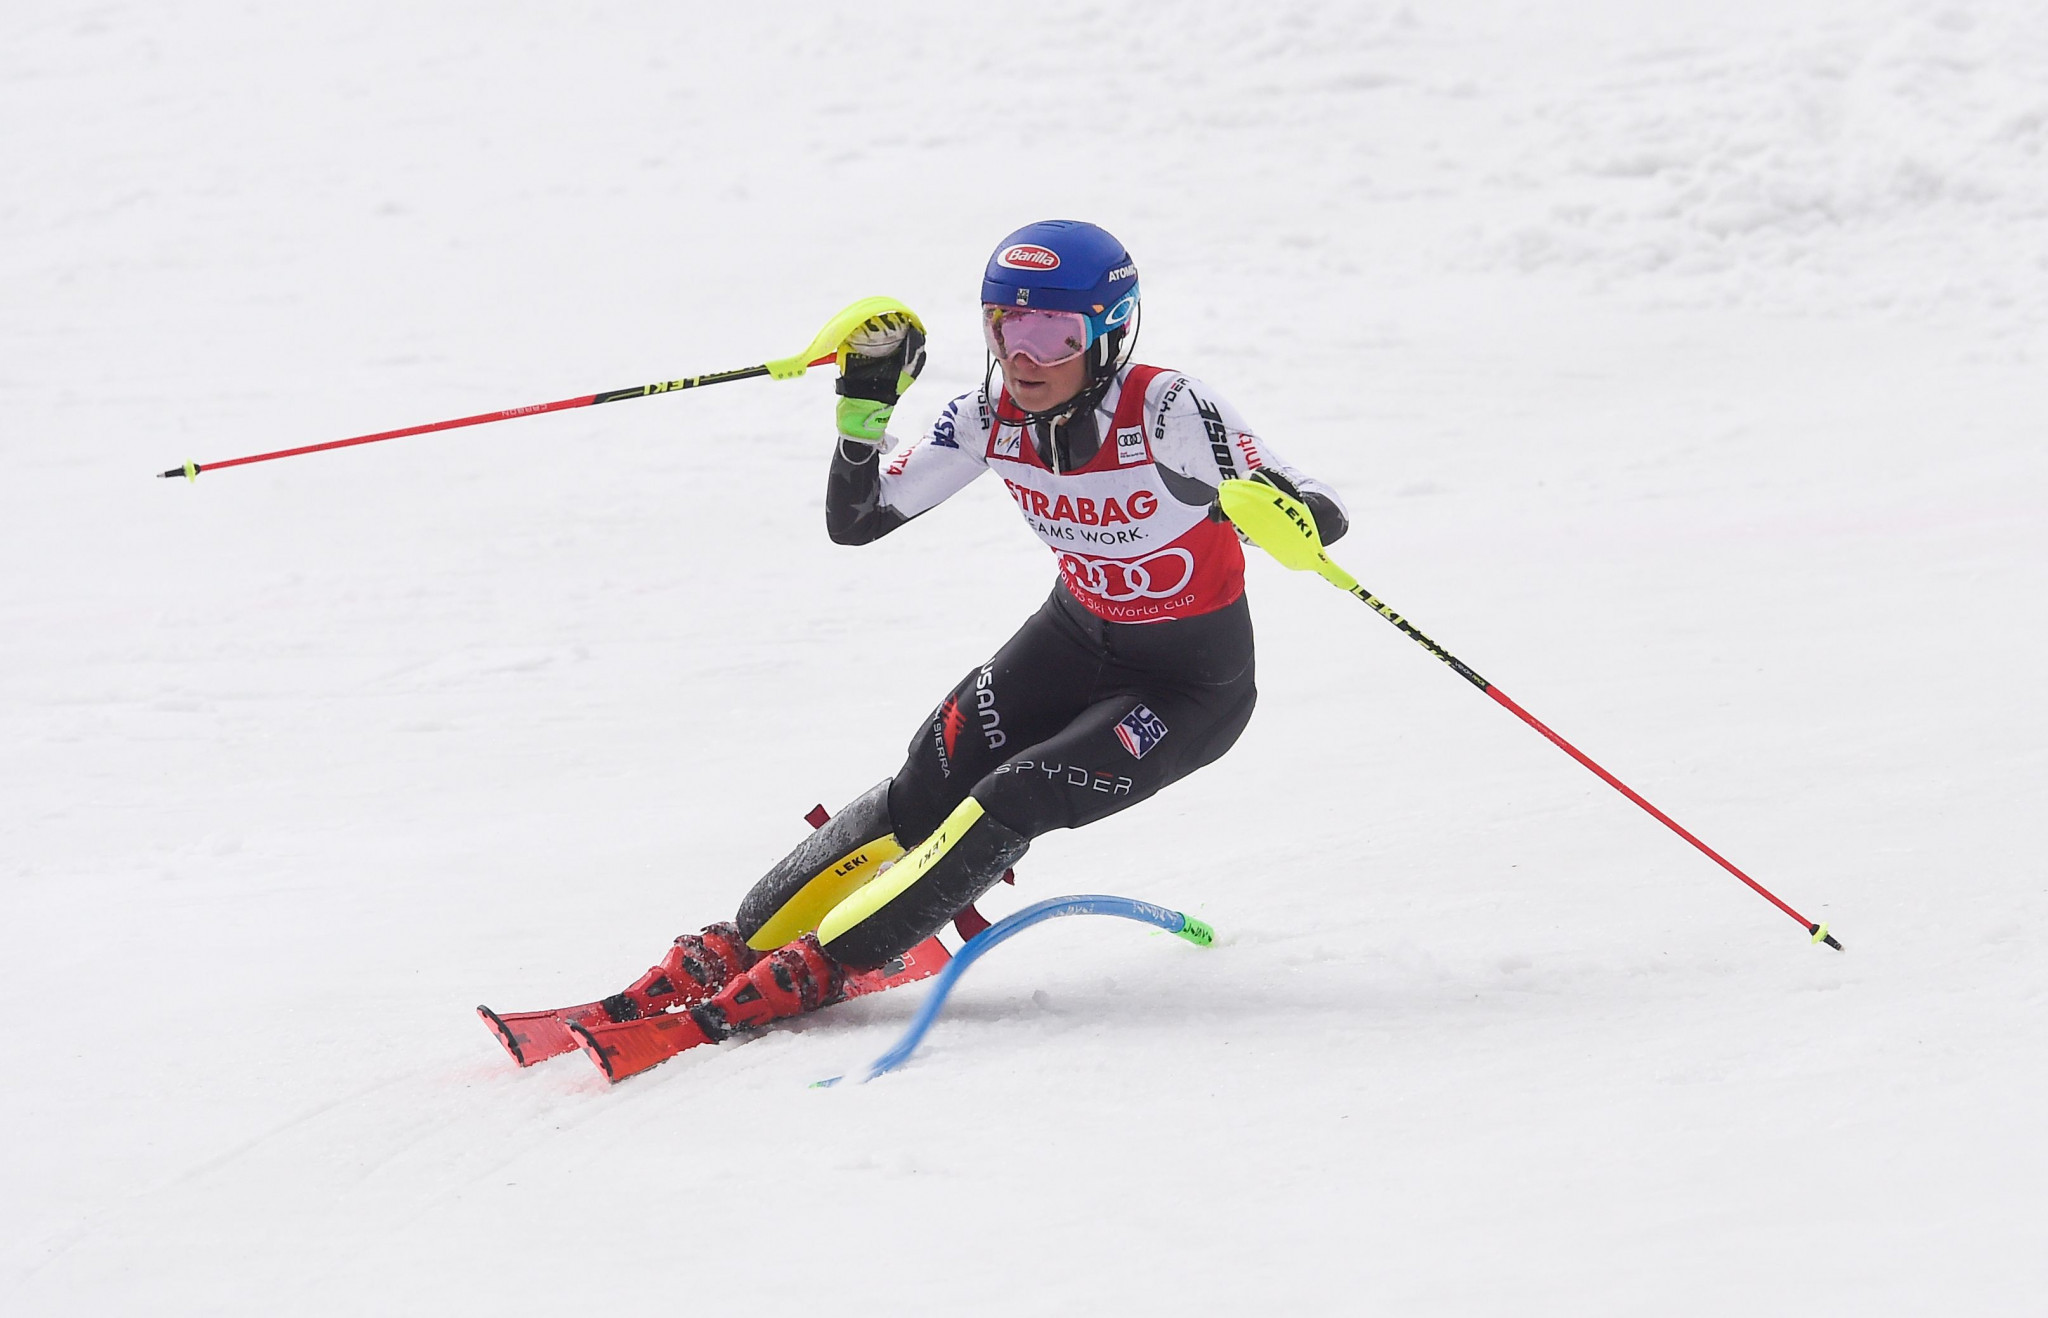 Shiffrin claims record-breaking 15th win of the season with slalom victory at FIS Alpine Skiing World Cup